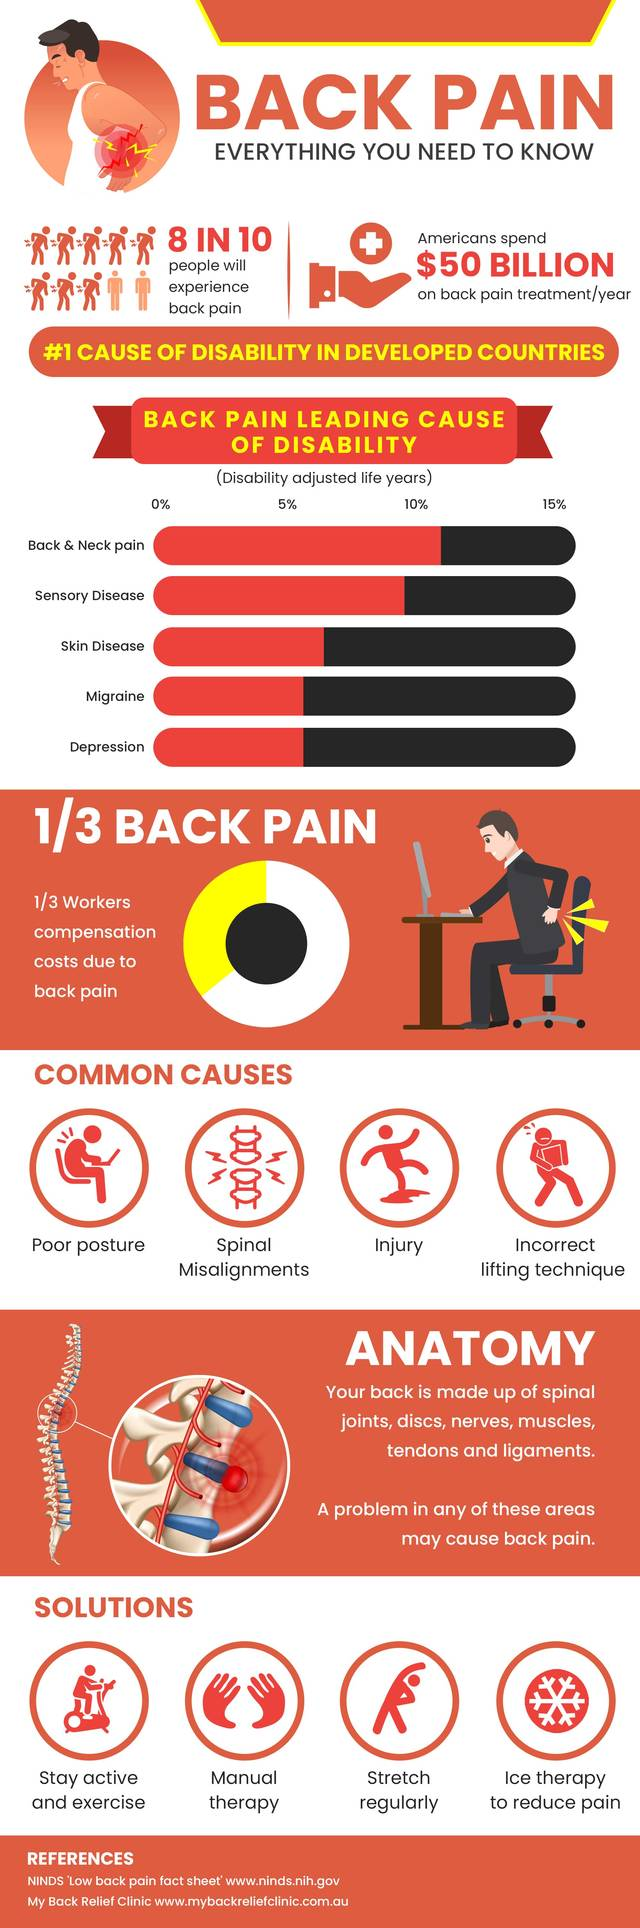 Backpain infographic my back relief clinic min